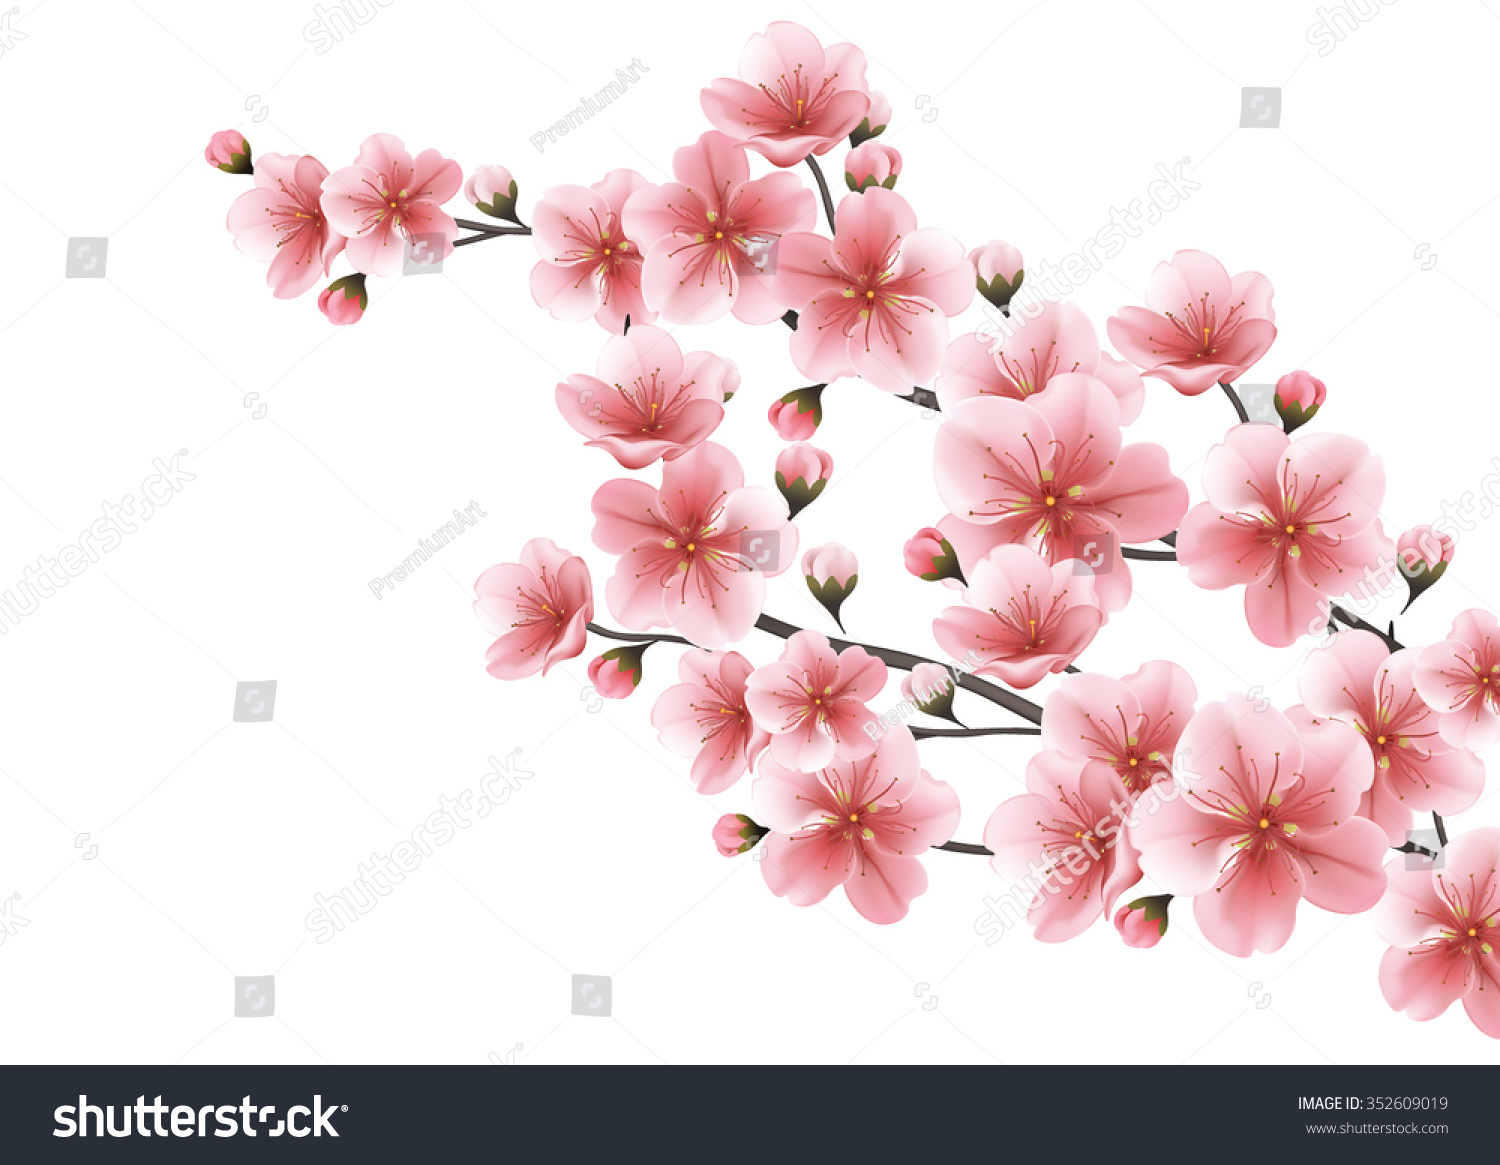 Nature background blossom branch pink sakura stock vector nature background with blossom branch of pink sakura flowers vector template isolated on white background dhlflorist Images